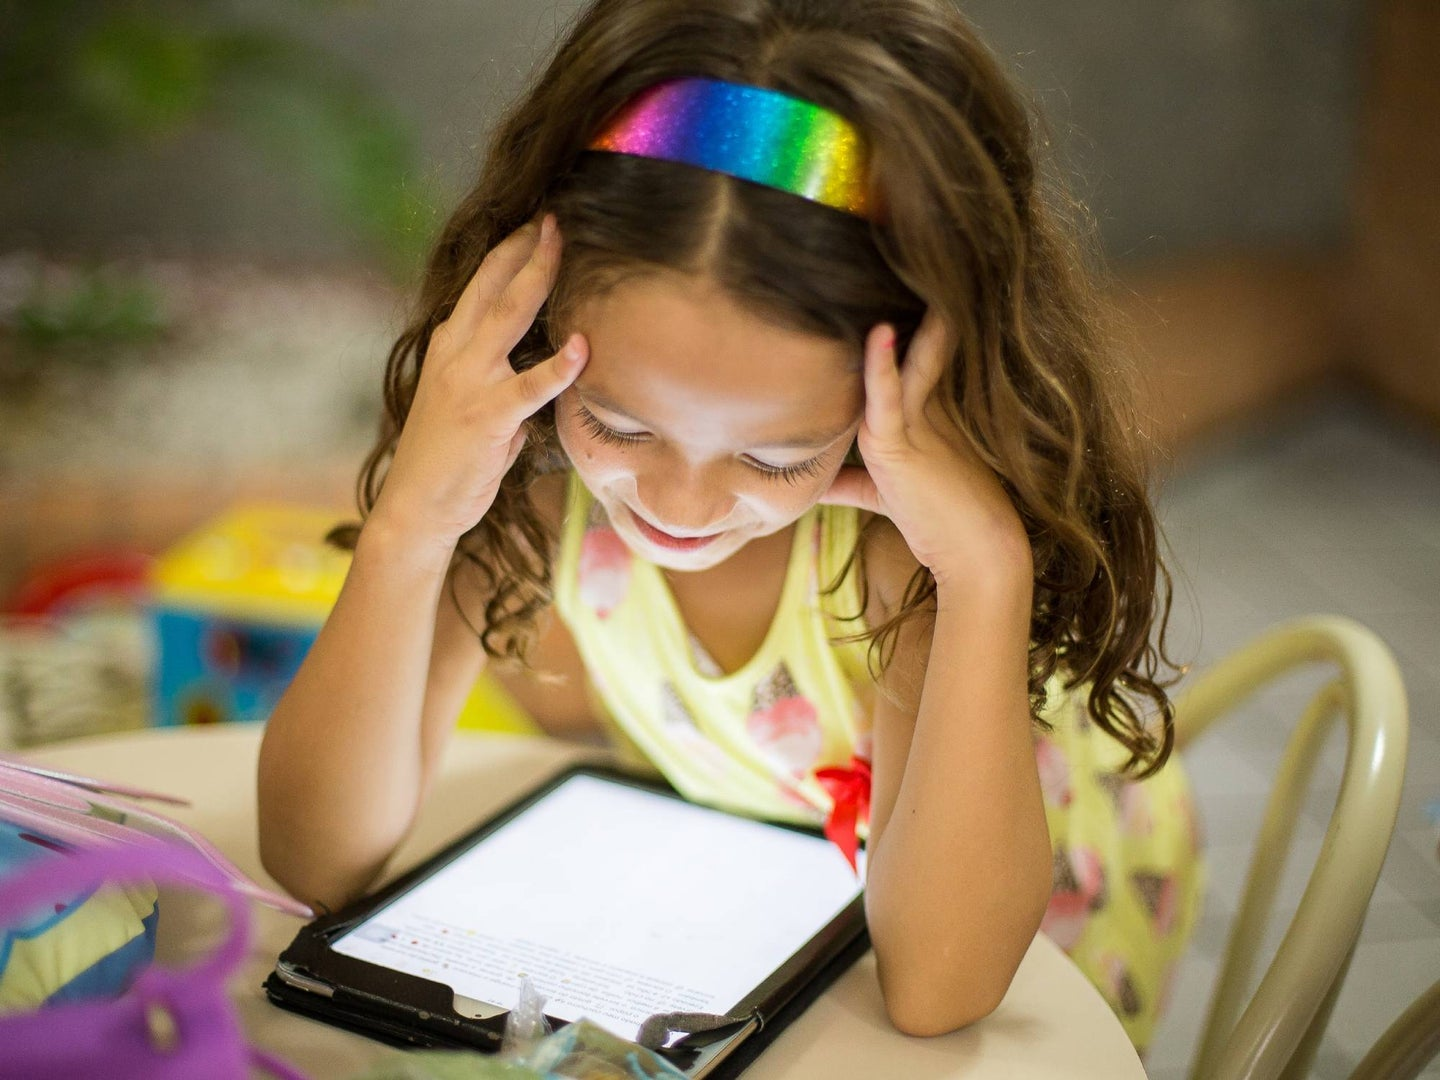 Young child sitting at a table looking at a tablet